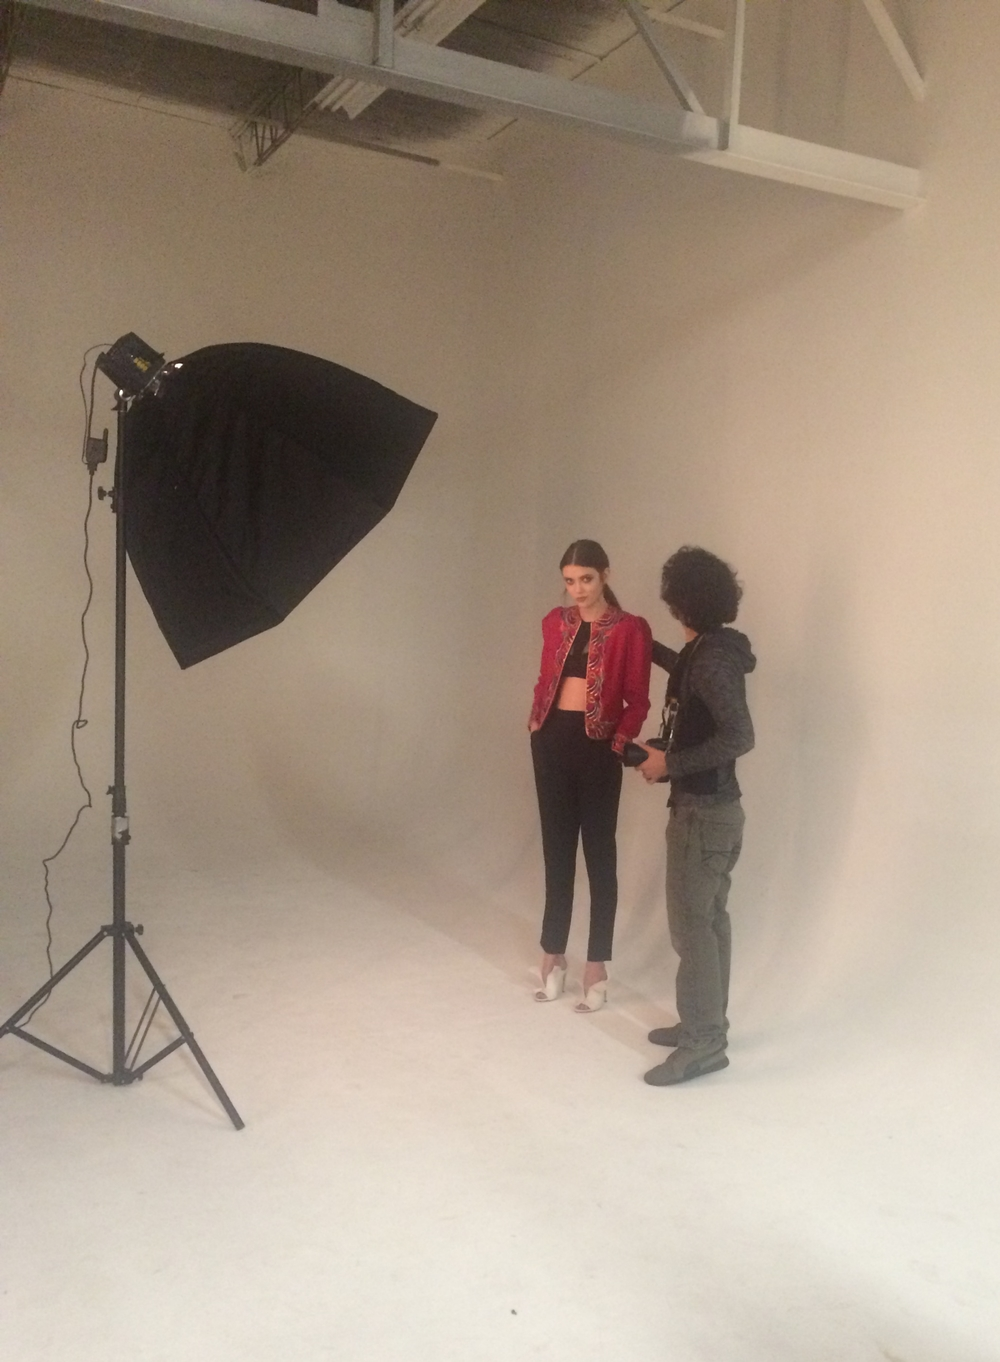 On set with photographer Kevin Alexander and model Sophia Crawford, Donna Baldwin Agency